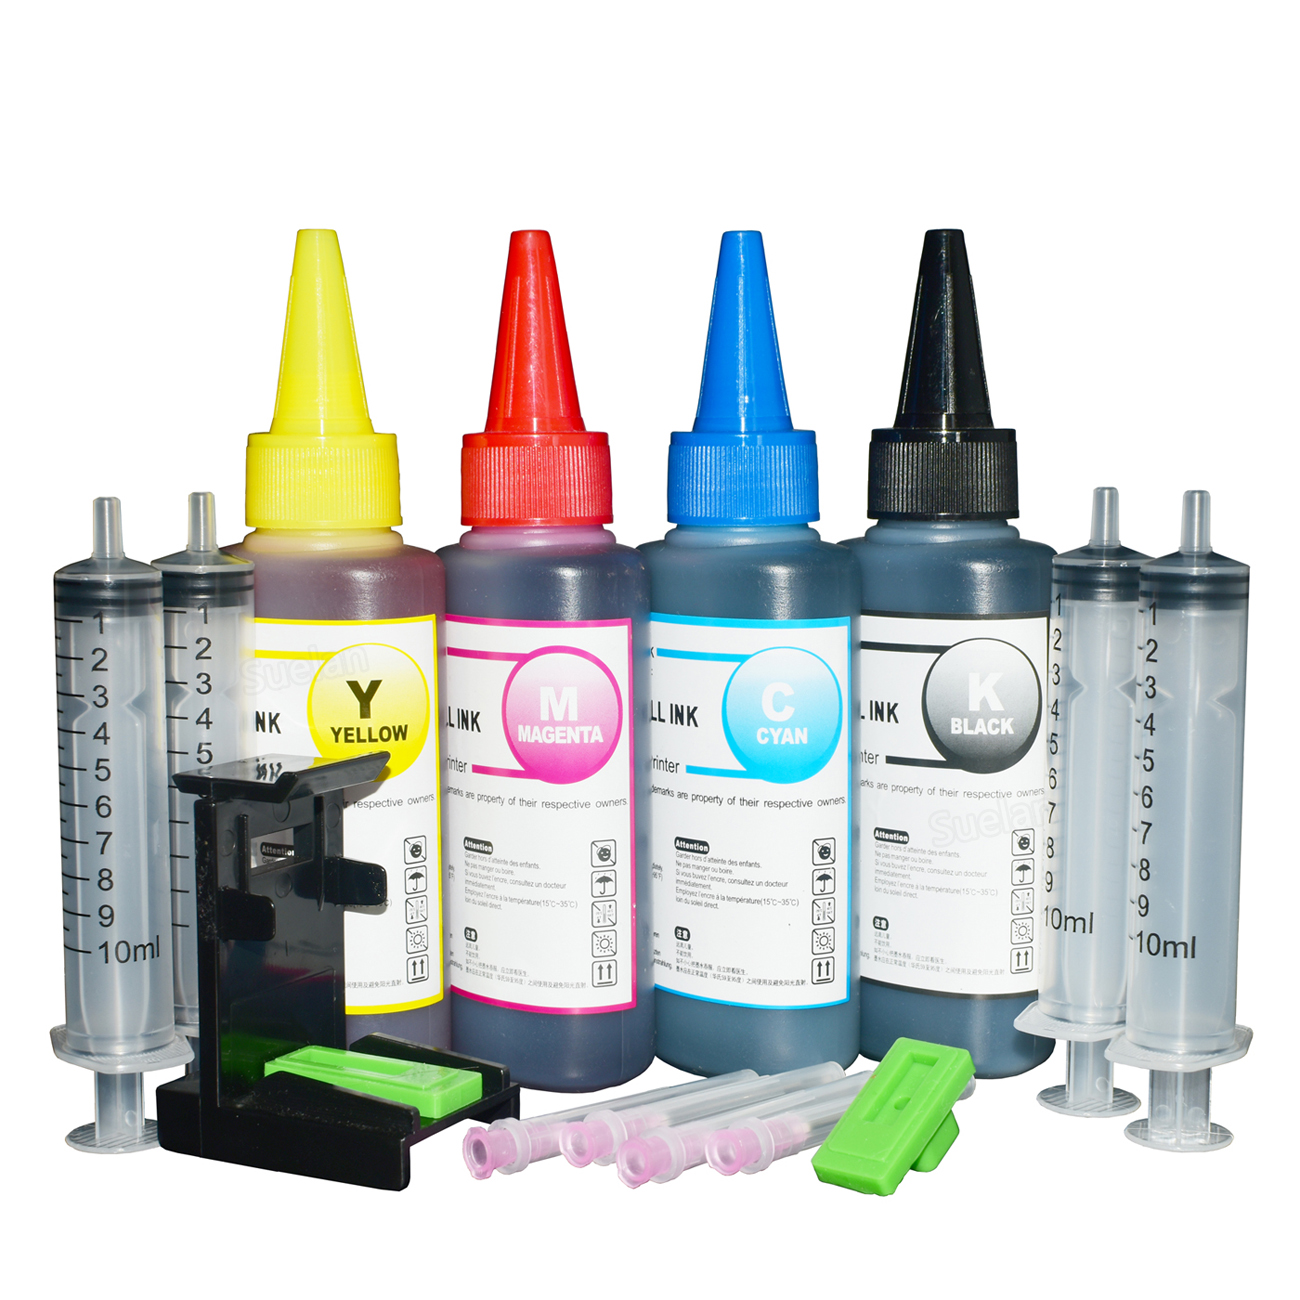 Printer Ink for Hp 123 Ink Cartridge Hp 121 HP122 HP 650 HP 129 HP 21 22 hp 140 for hp deskjet 2130 2620 HP 652 Refill Ink 4x100